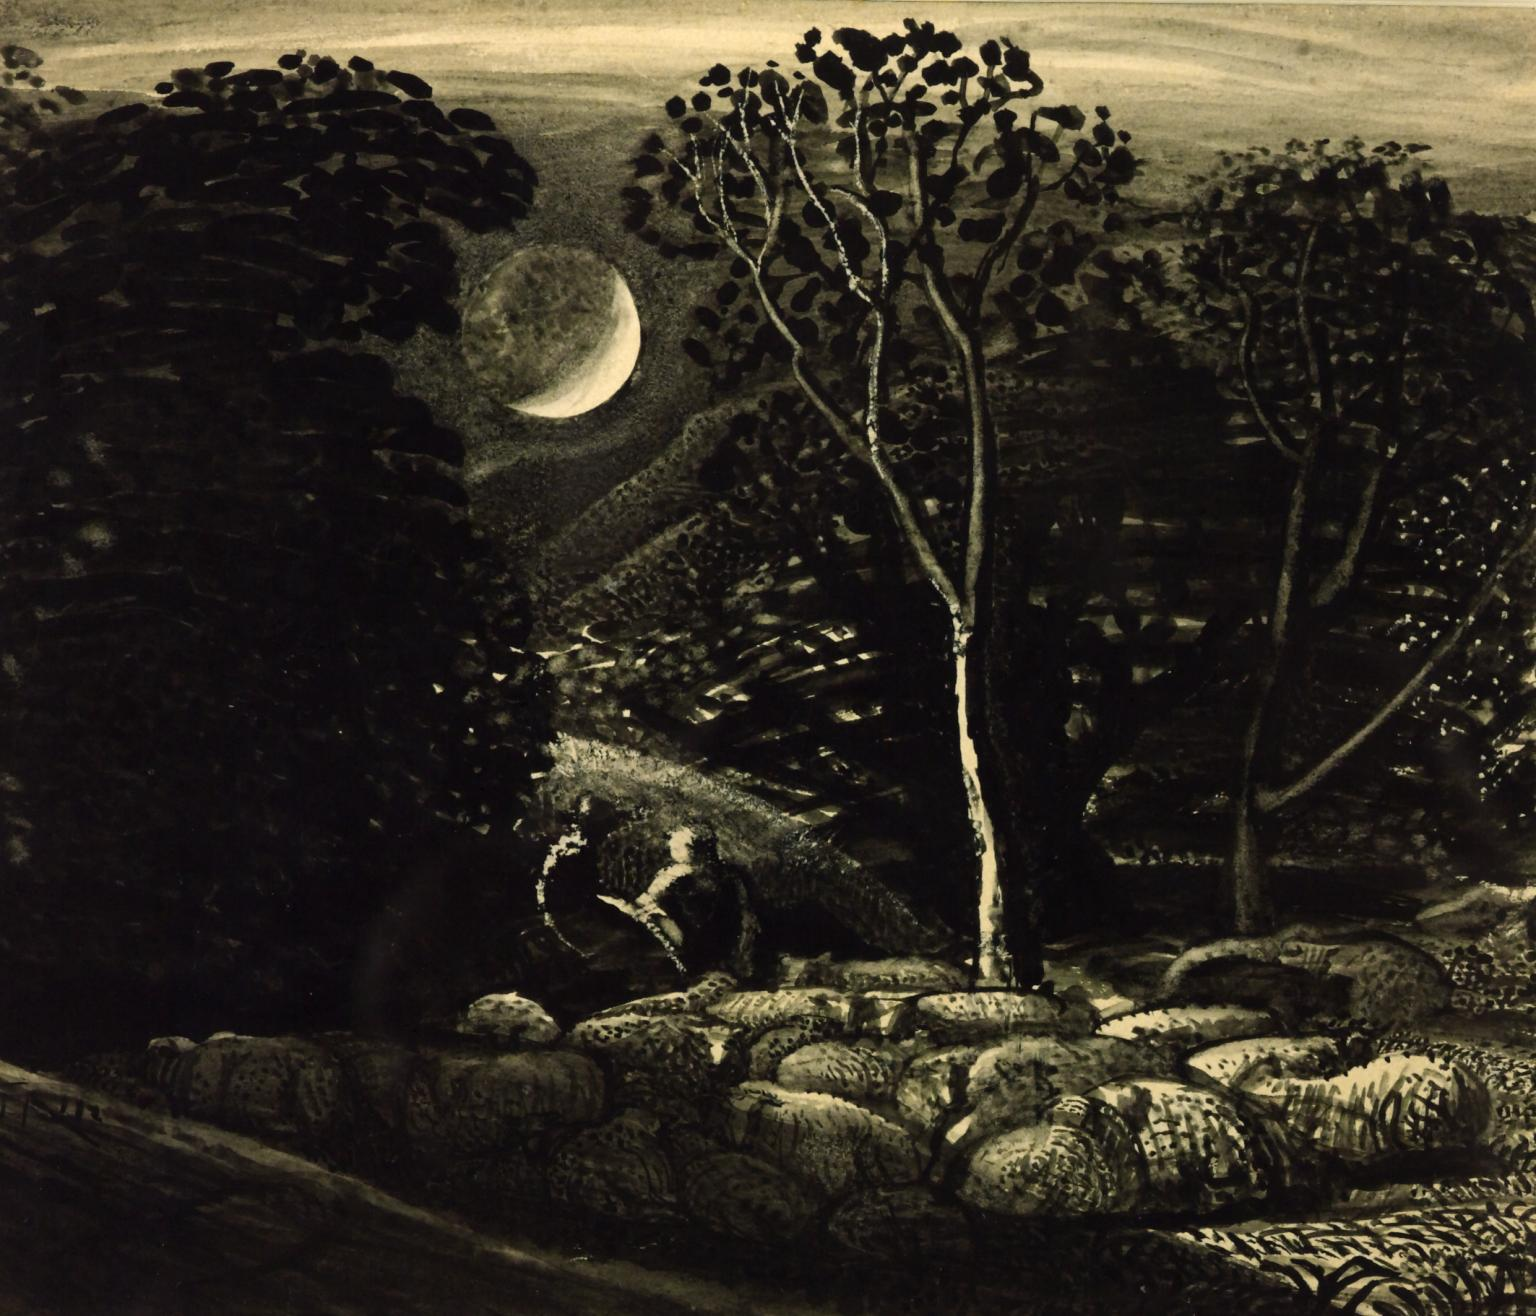 Black and white old painting at night with sheep under a crescent moon